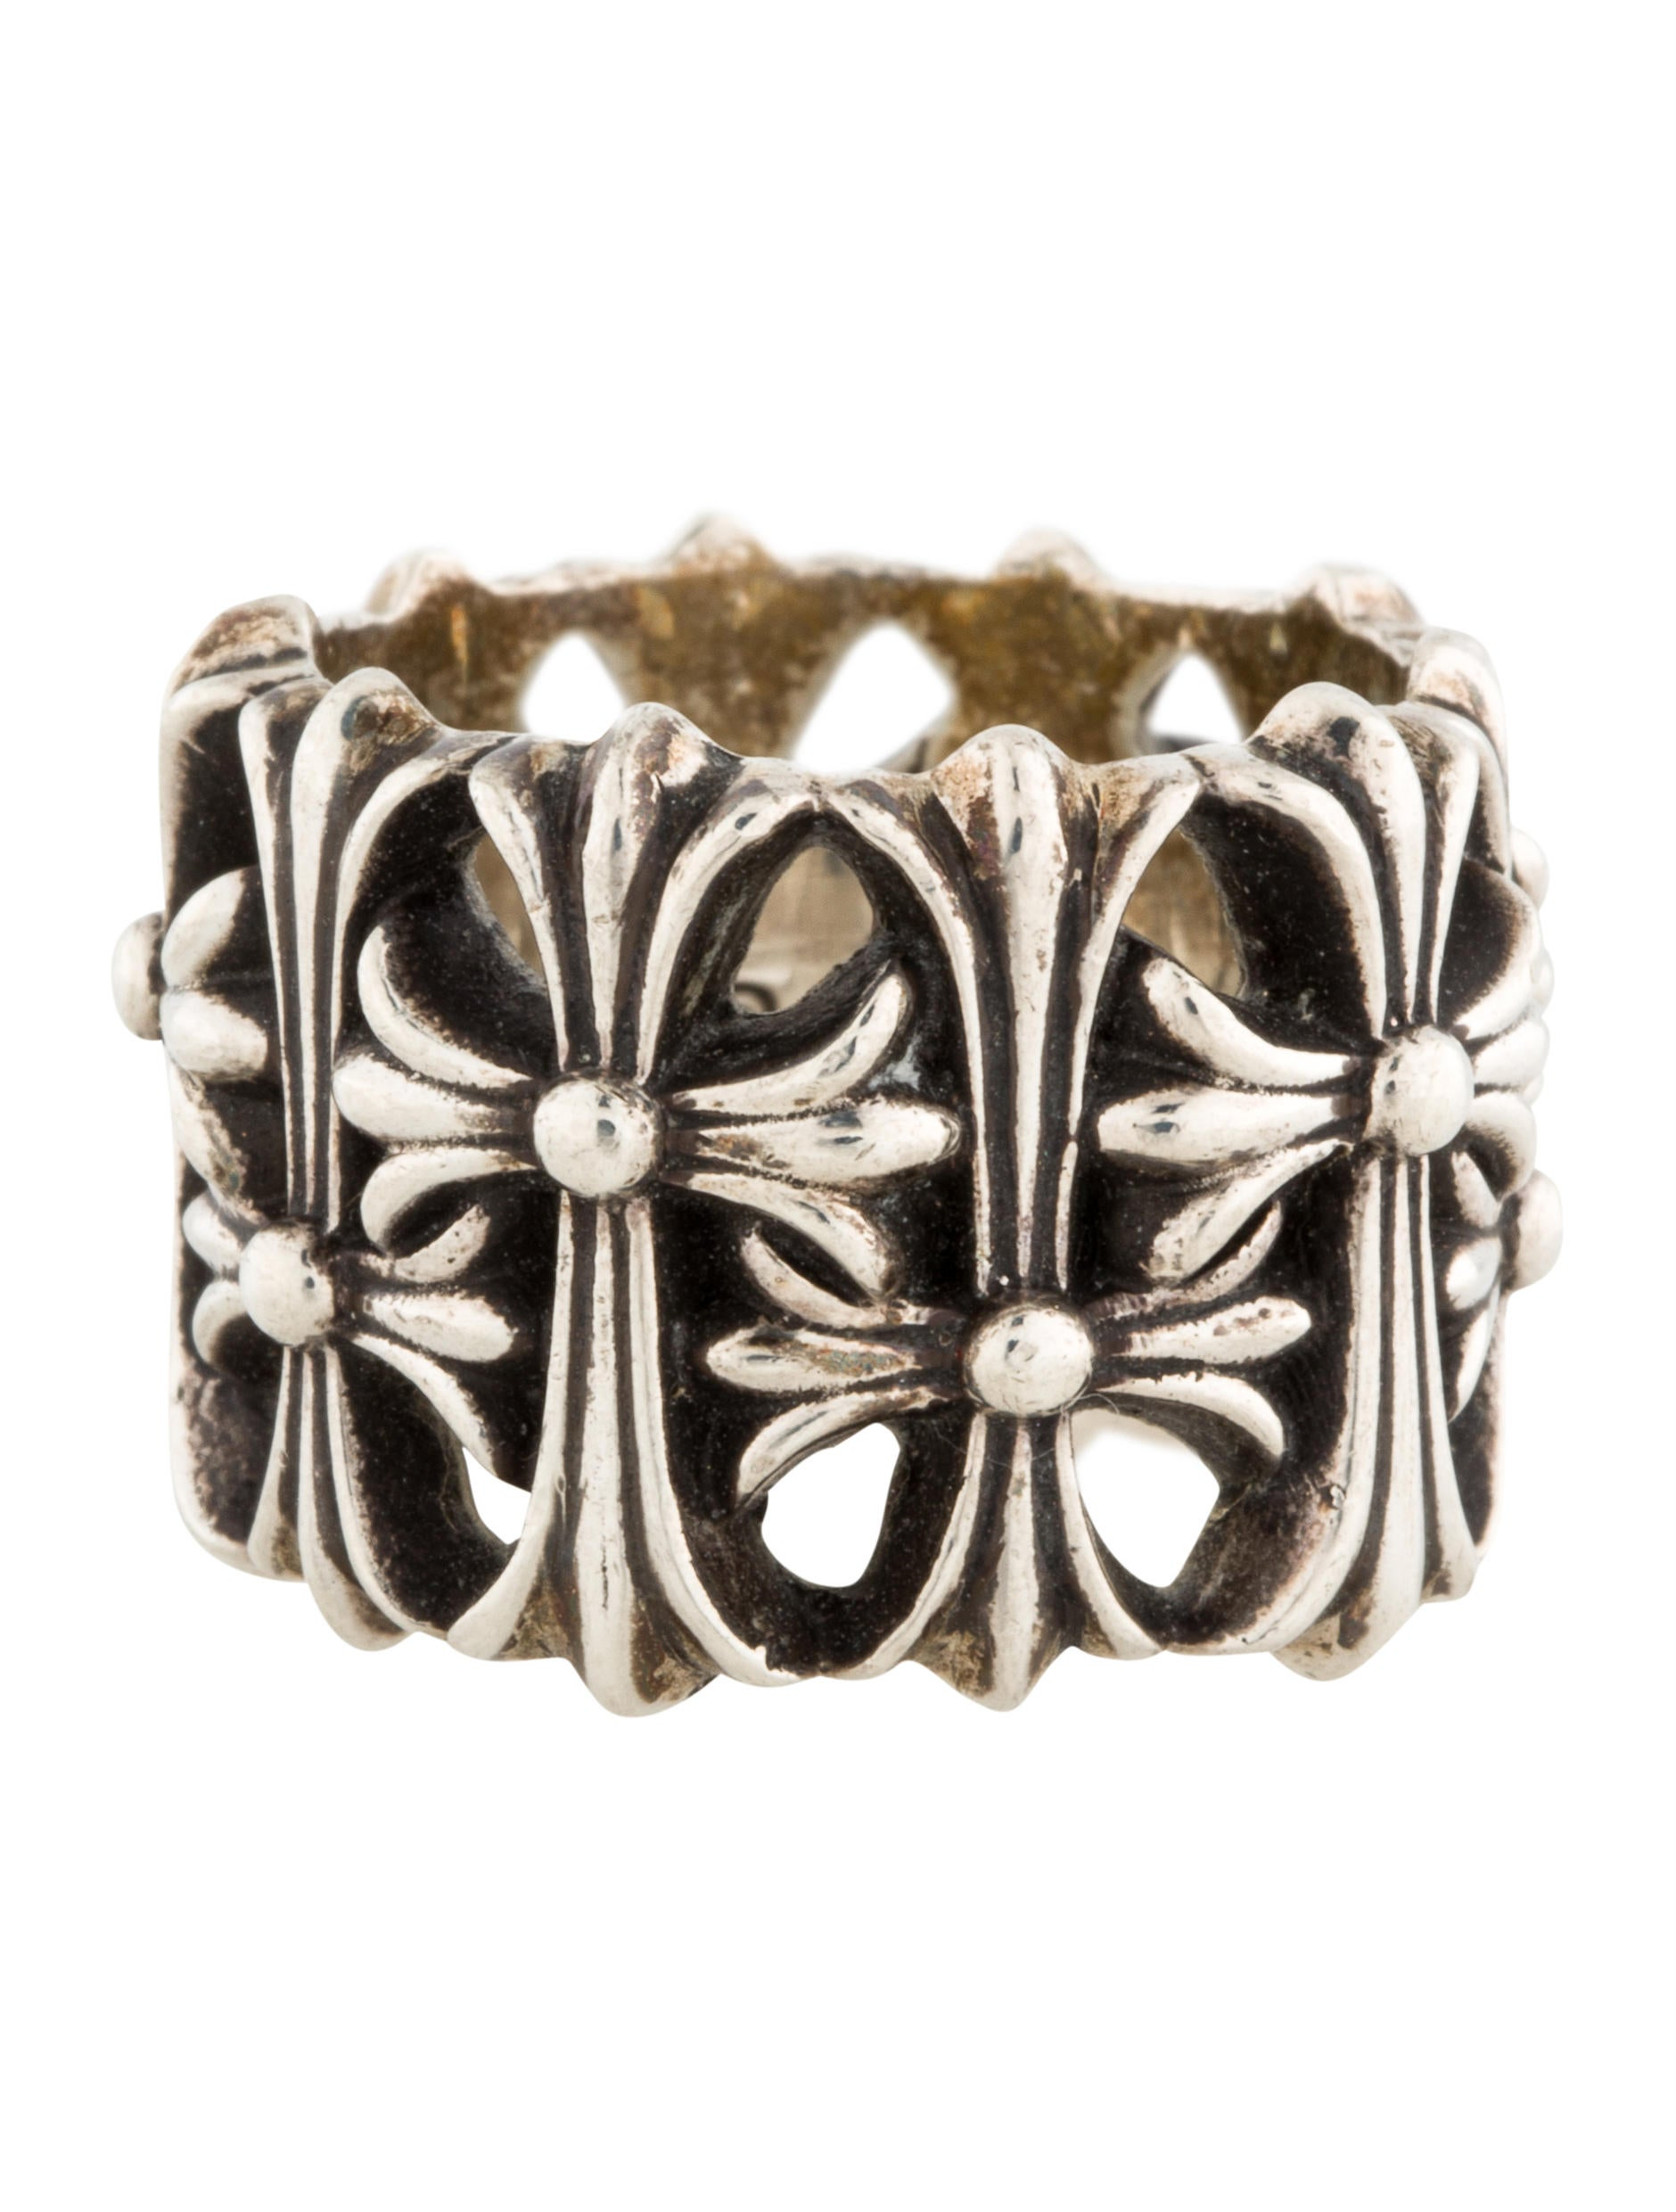 243259e51972 Chrome Hearts Cemetery Ring - Rings - CHH20814